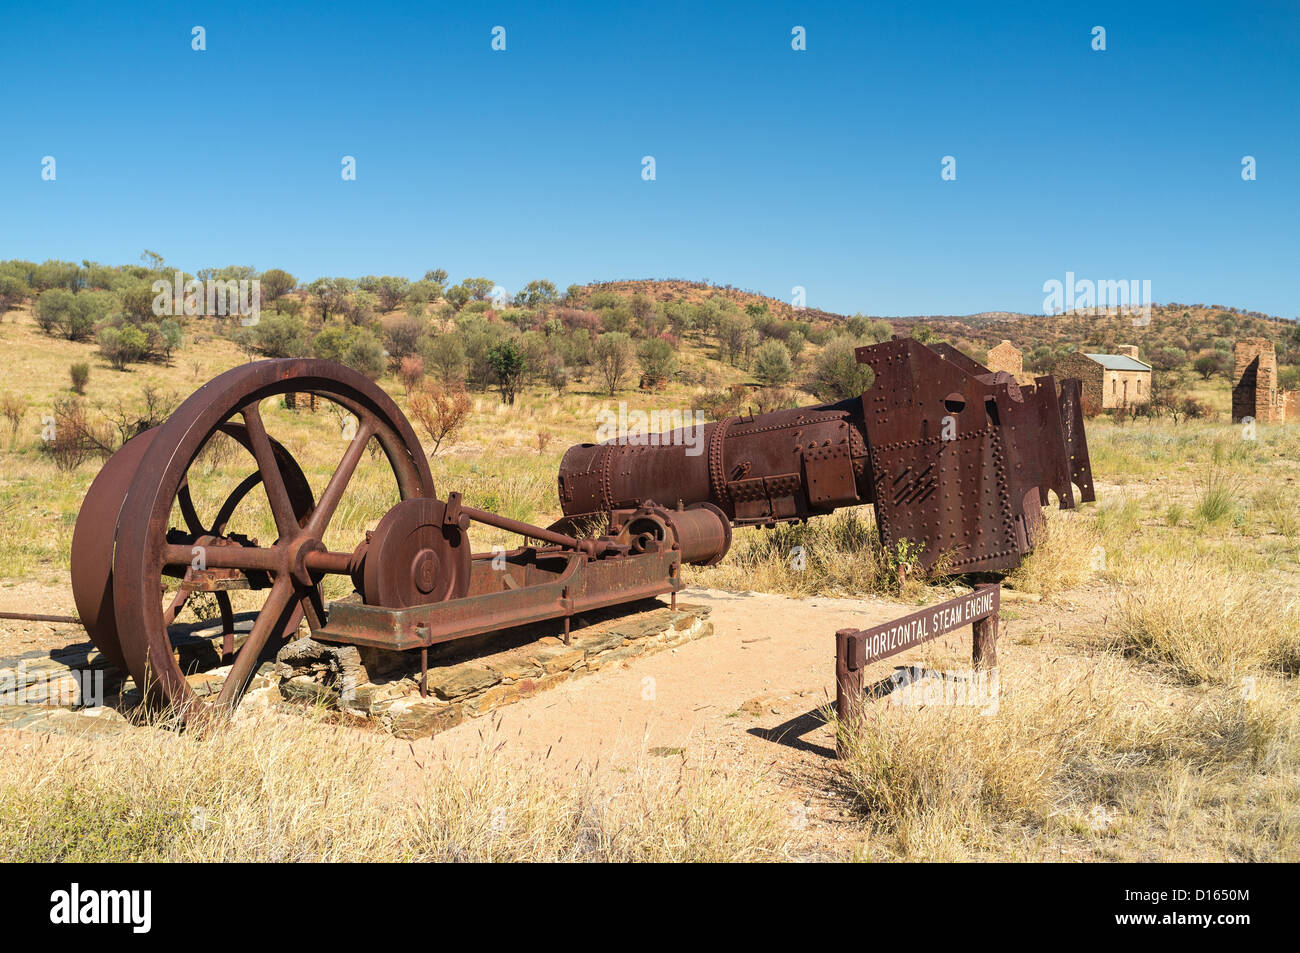 Ruins of an old steam engine at Arltunga Historic Reserve, East MacDonnell Ranges in the Red Centre of the Northern - Stock Image